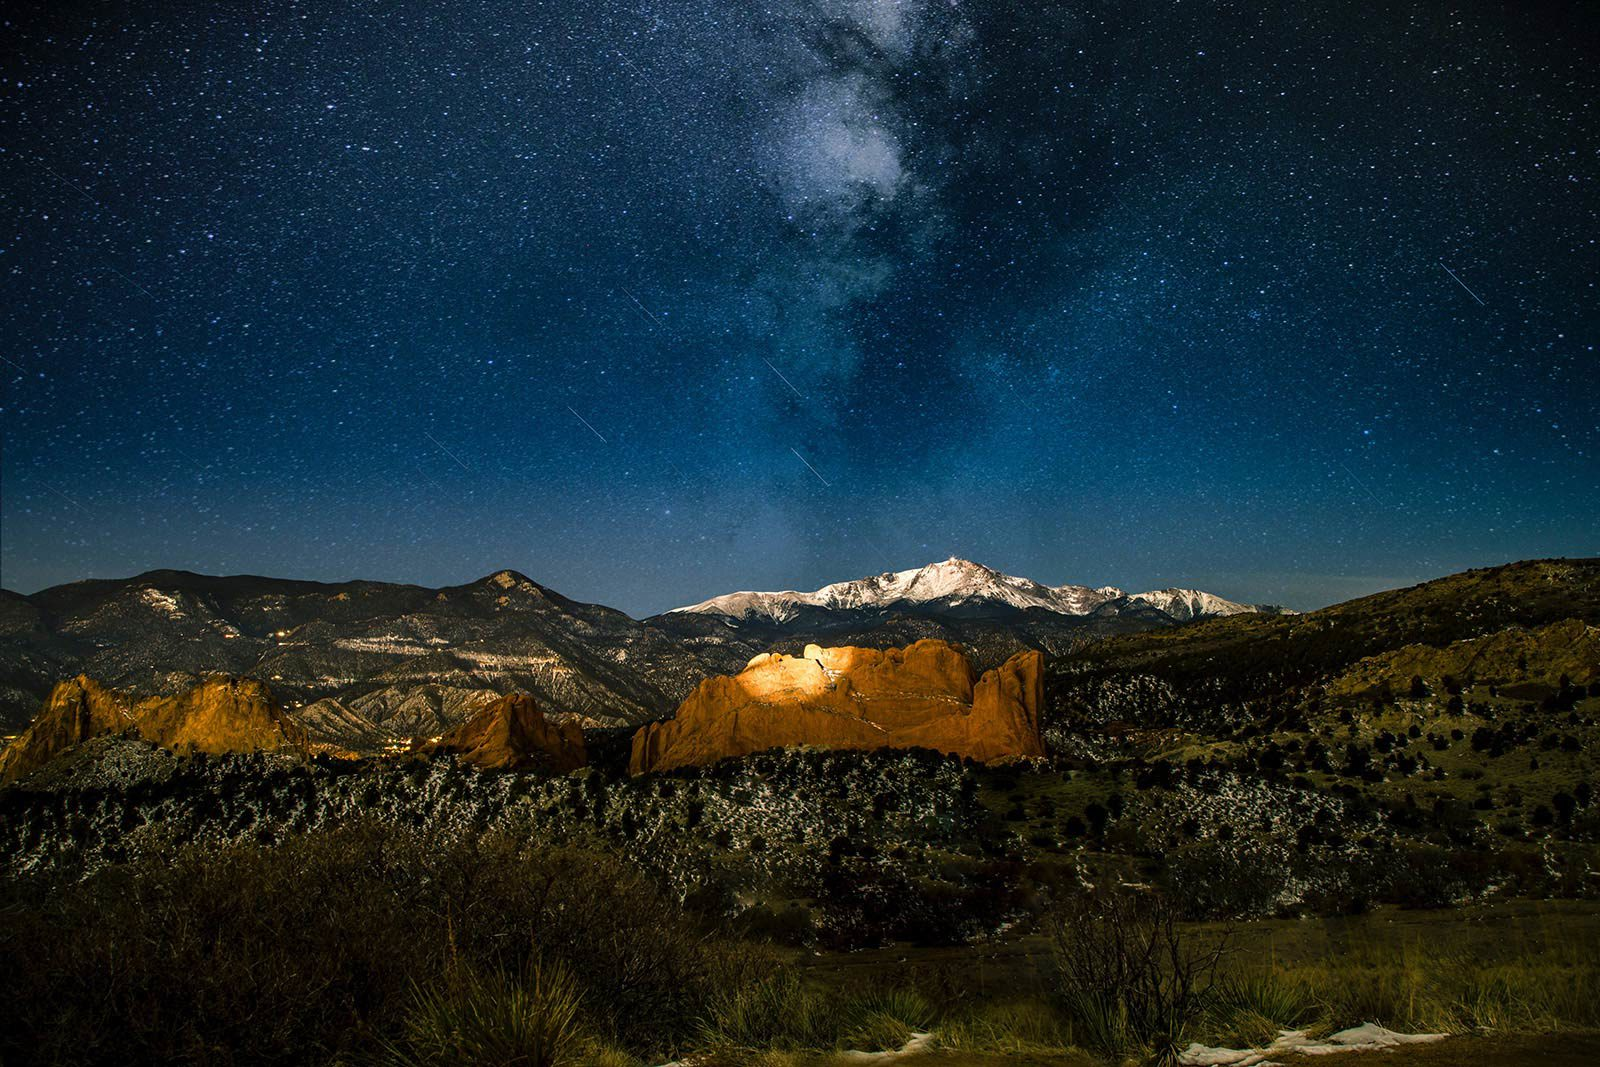 View of snow-capped mountains under dark blue starry sky.